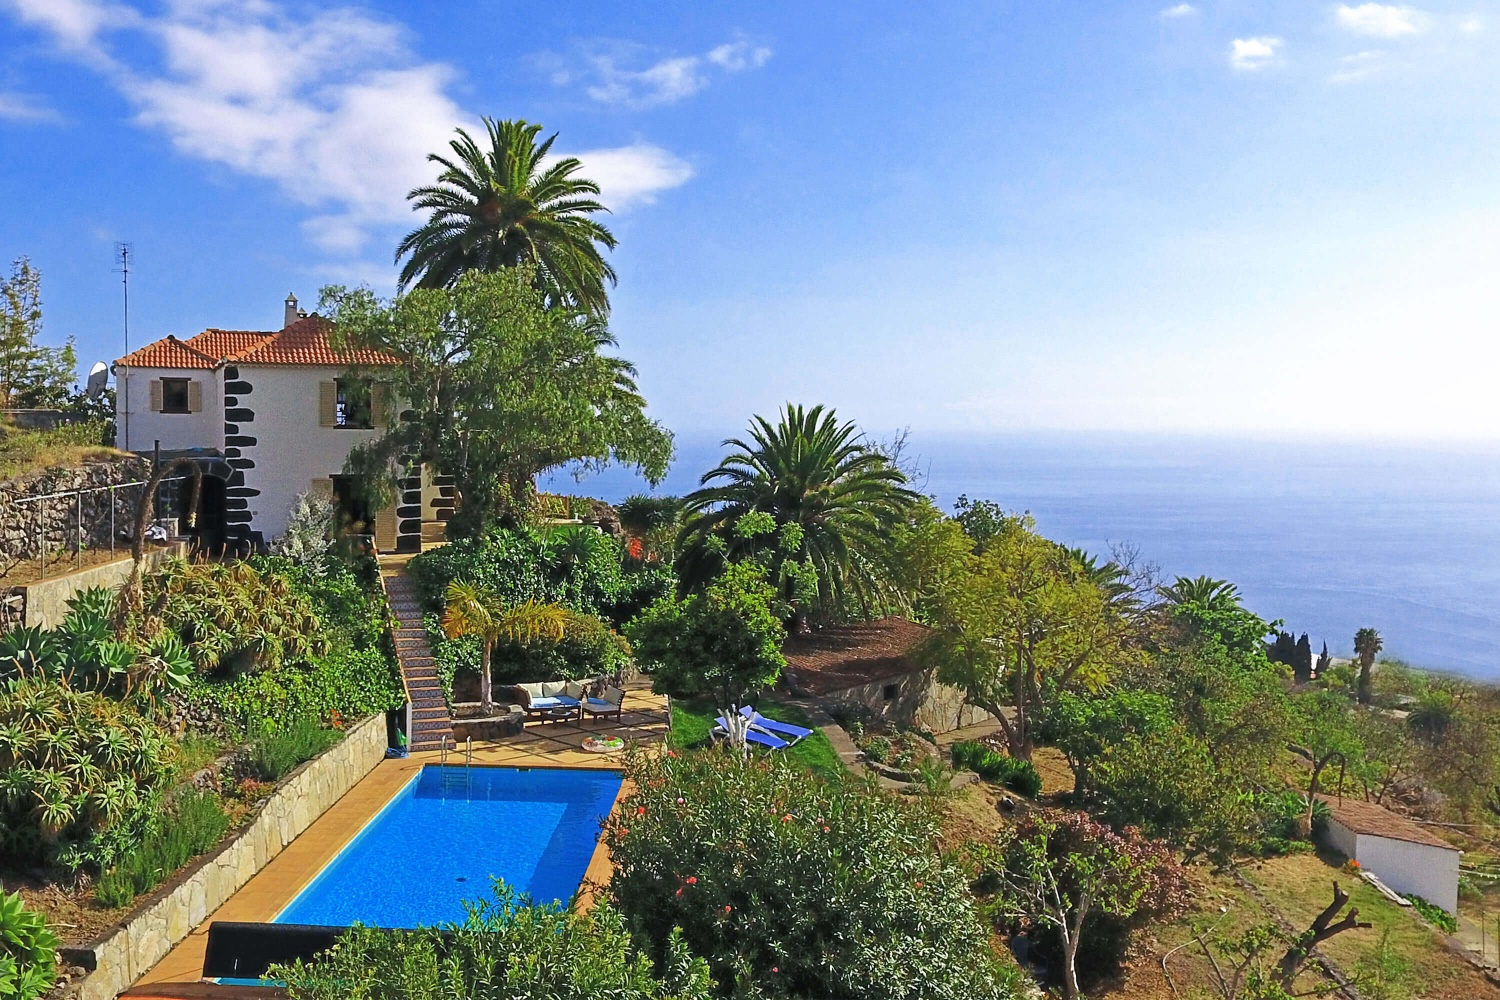 This typical Canarian property beautifully restored in a lush garden with private pool is located in Tijarafe, in the west of La Palma with magnificent views of the countryside and the Atlantic Ocean.